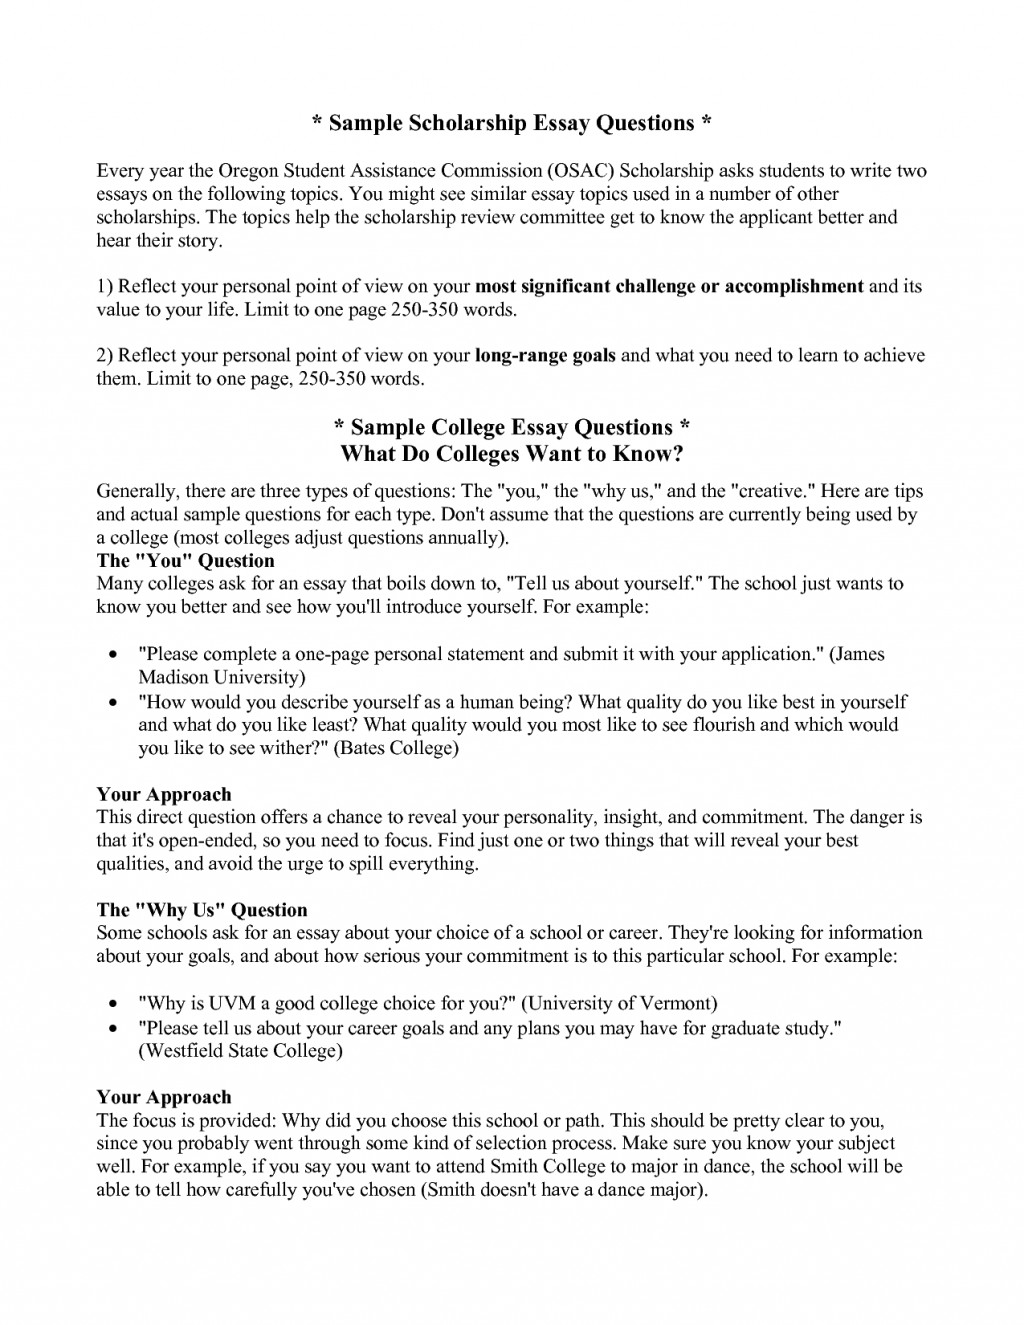 023 Essay Example Critical Thinking In College Management Houston Top Ten Mfa Sample Question For Your Template Application Questions Frightening Topics 2017 Boston Prompts Harvard Ideas Large